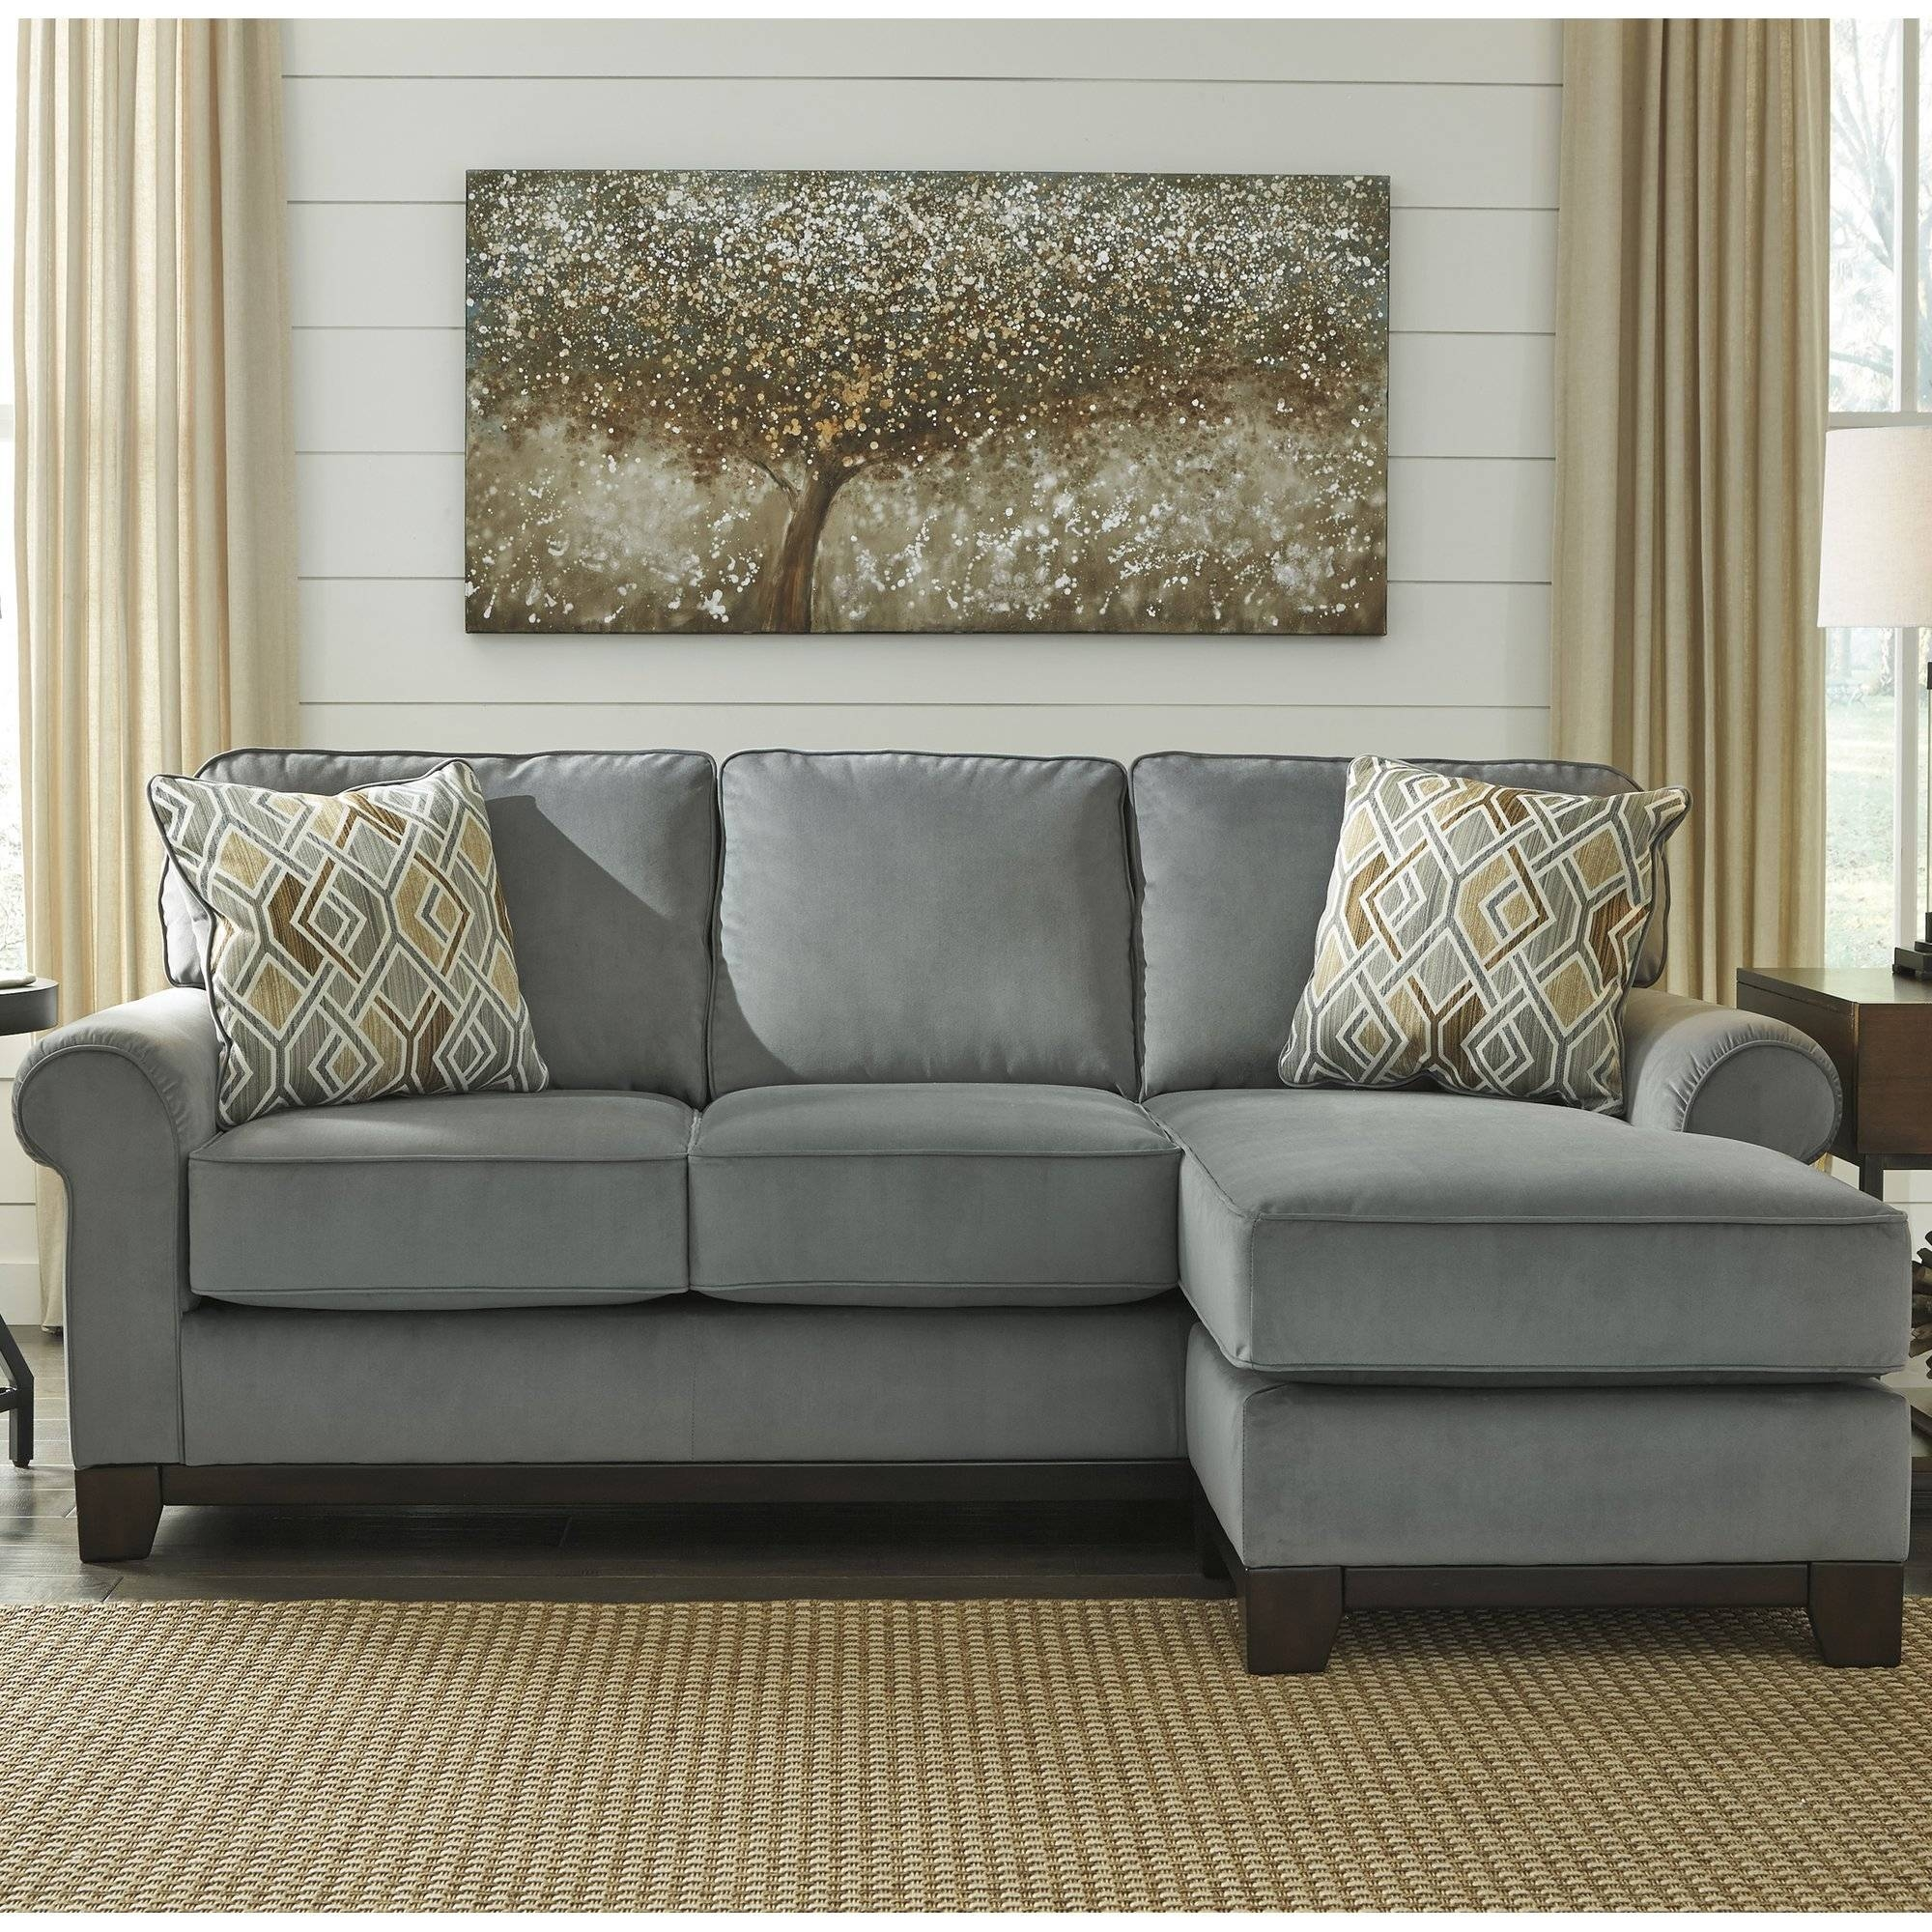 12 Best Collection Of 70 Sleeper Sofa for 70 Sleeper Sofa (Image 1 of 30)